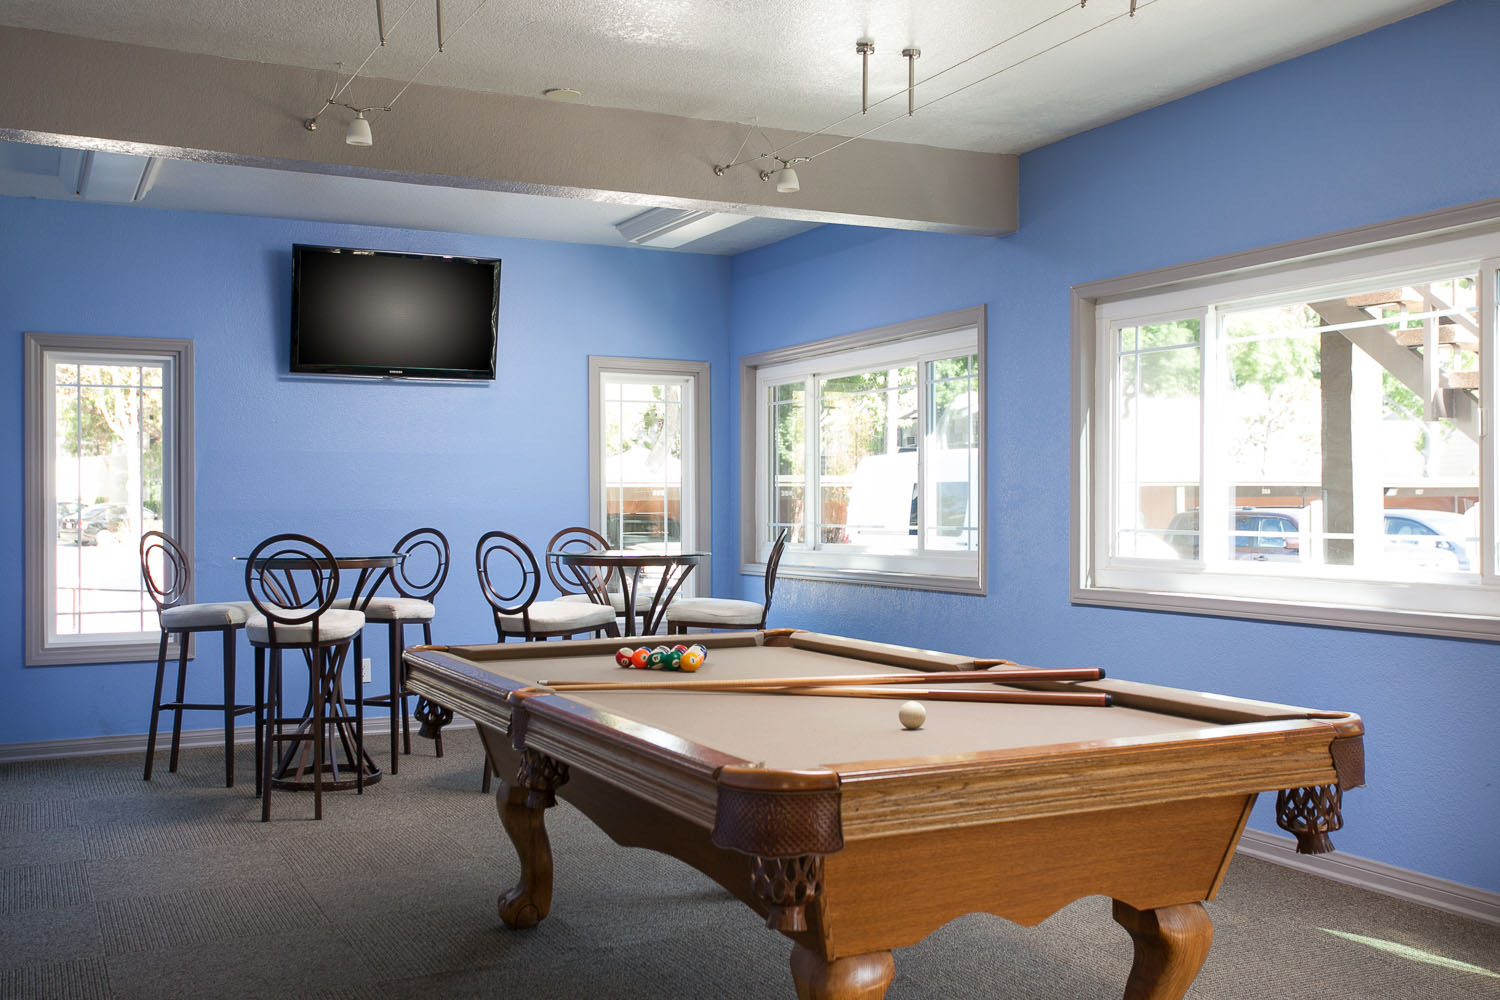 Highland Pinetree Apartments In Fullerton CA UCribs - Fullerton pool table